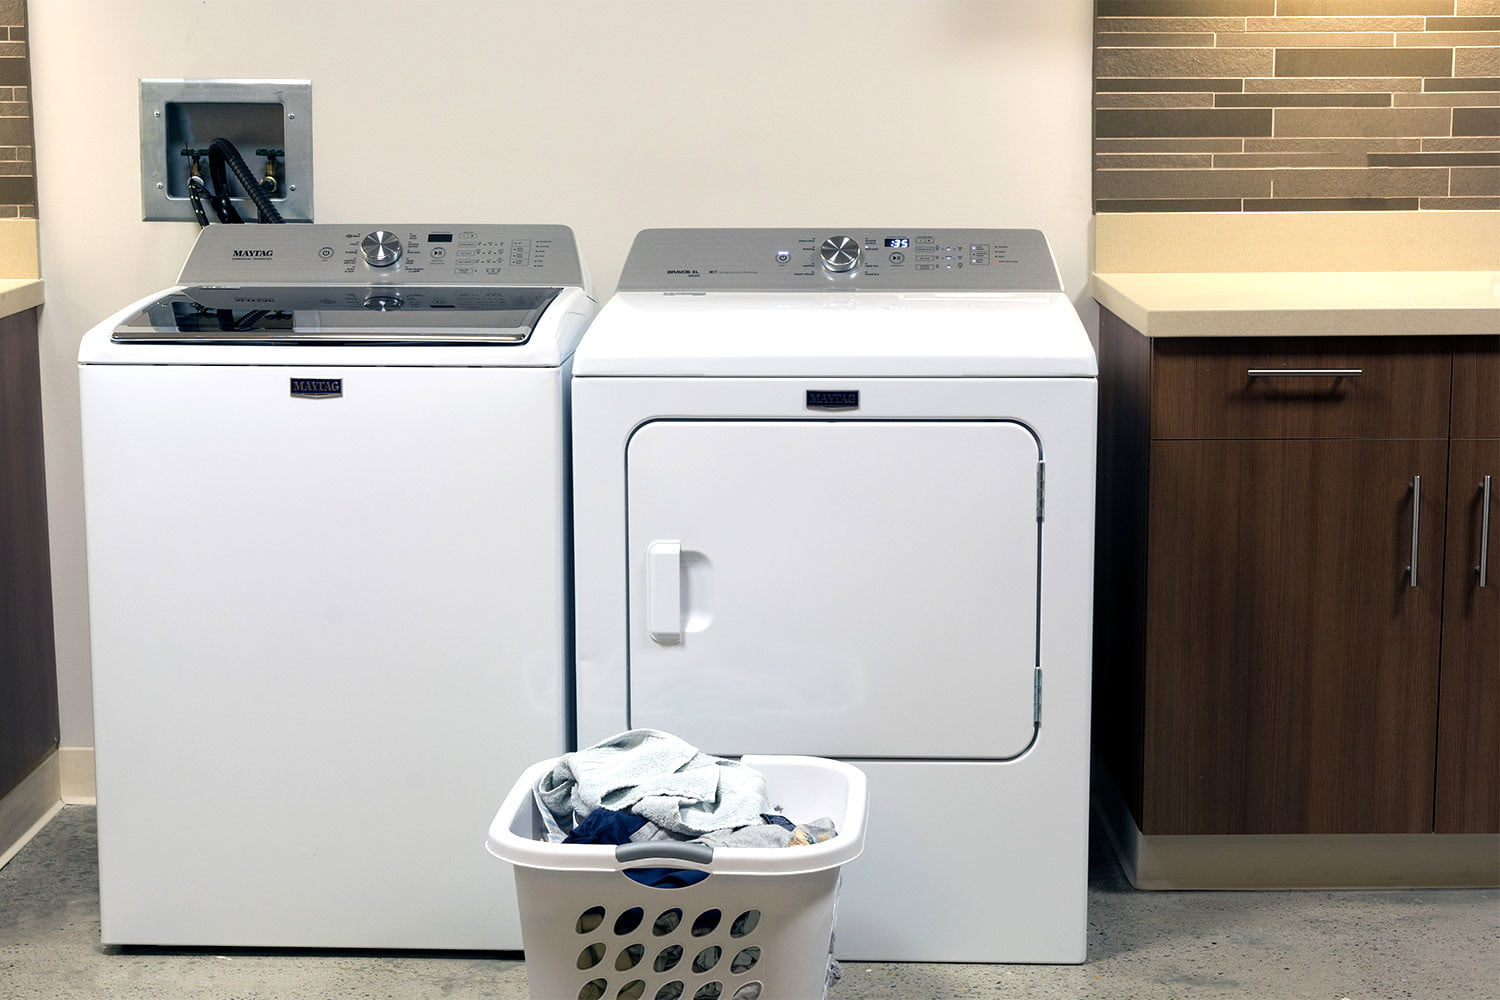 Marvelous Gas Dryers Vs Electric Dryers Whats The Difference Digital Trends Wiring Cloud Mangdienstapotheekhoekschewaardnl